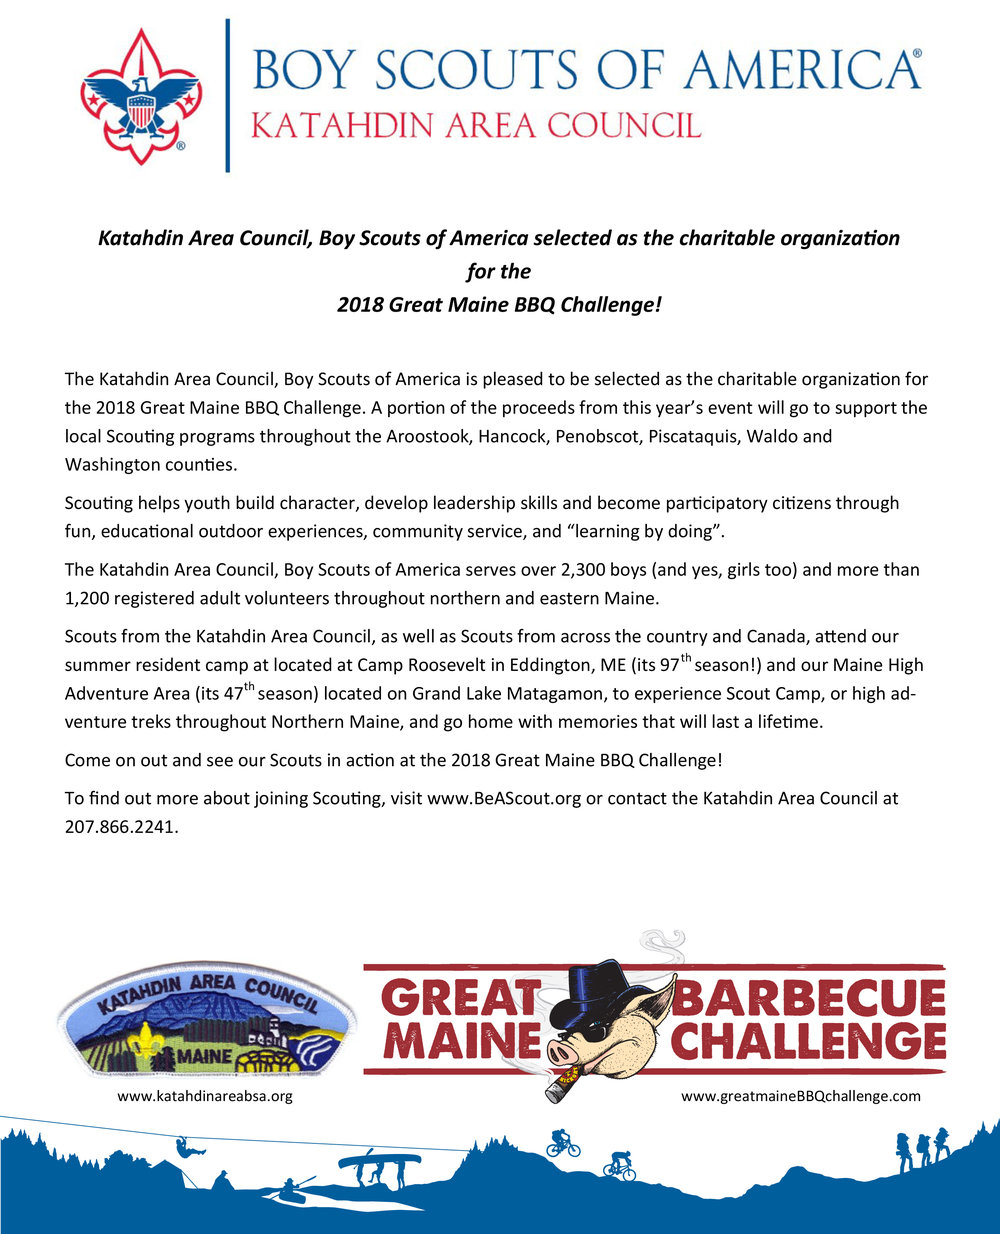 Great Maine BBQ Challenge KAC 2018 flyer.jpg